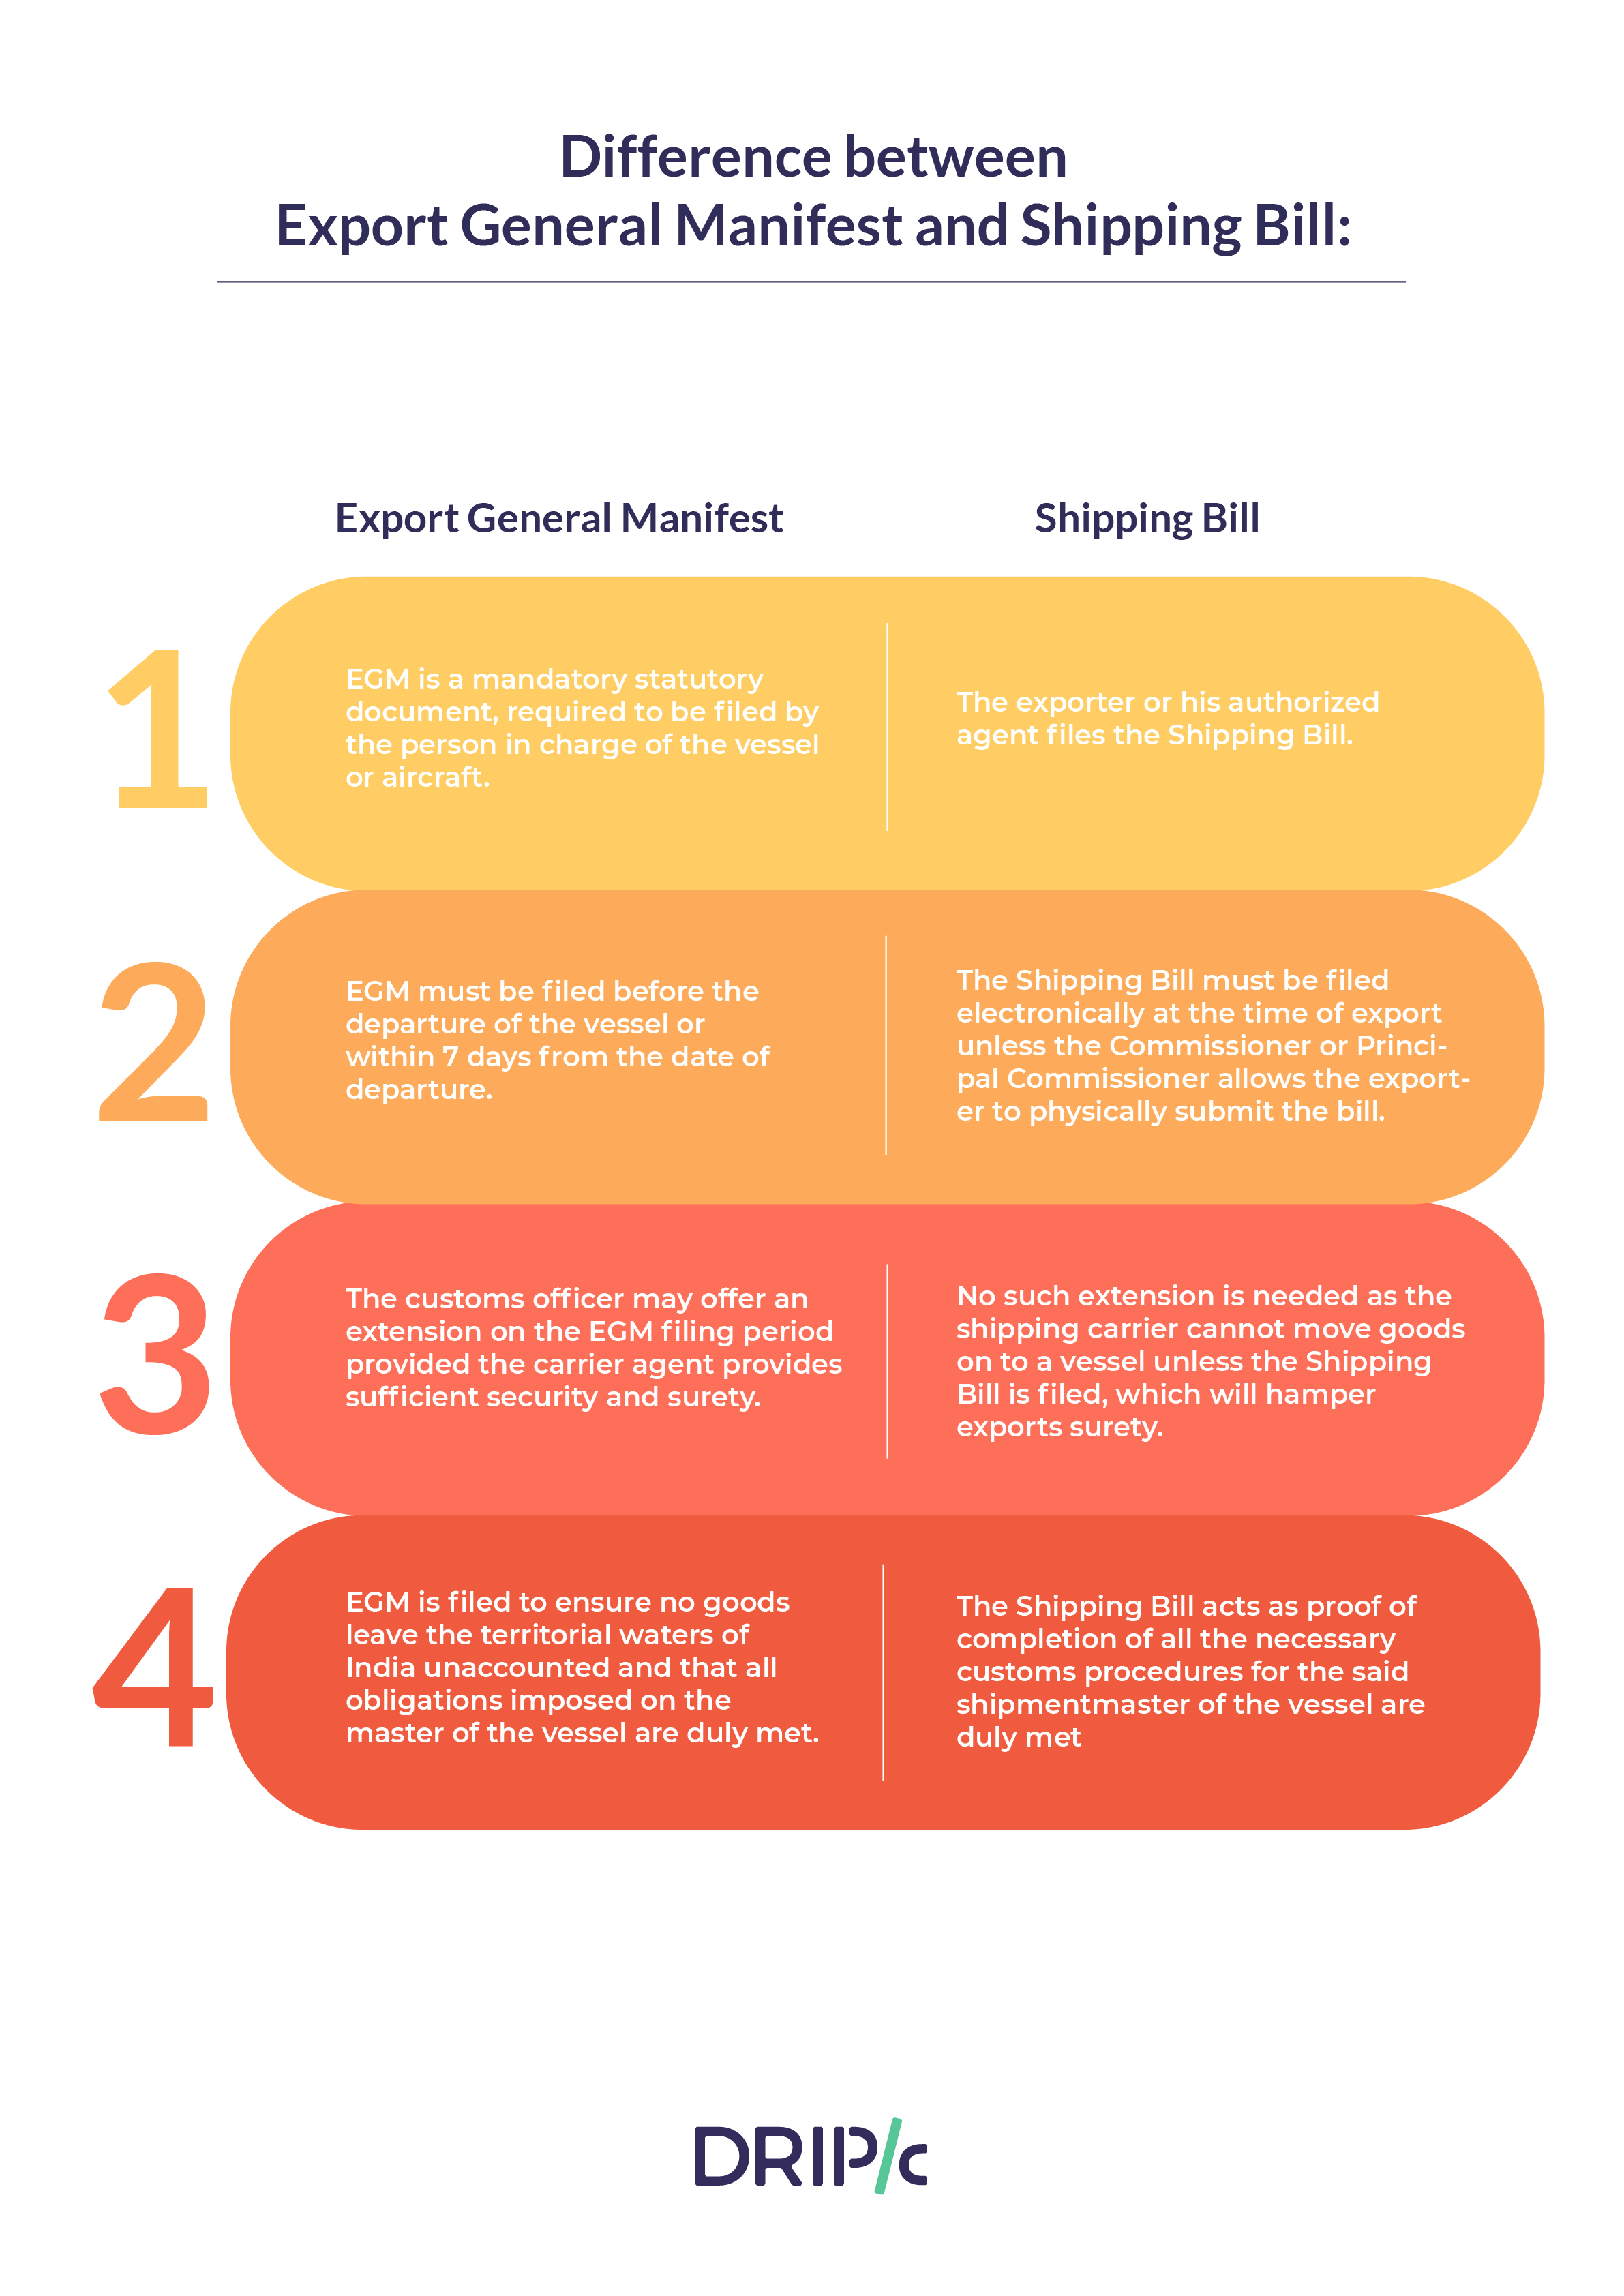 What's the Difference Between Export General Manifest and Shipping Bill?